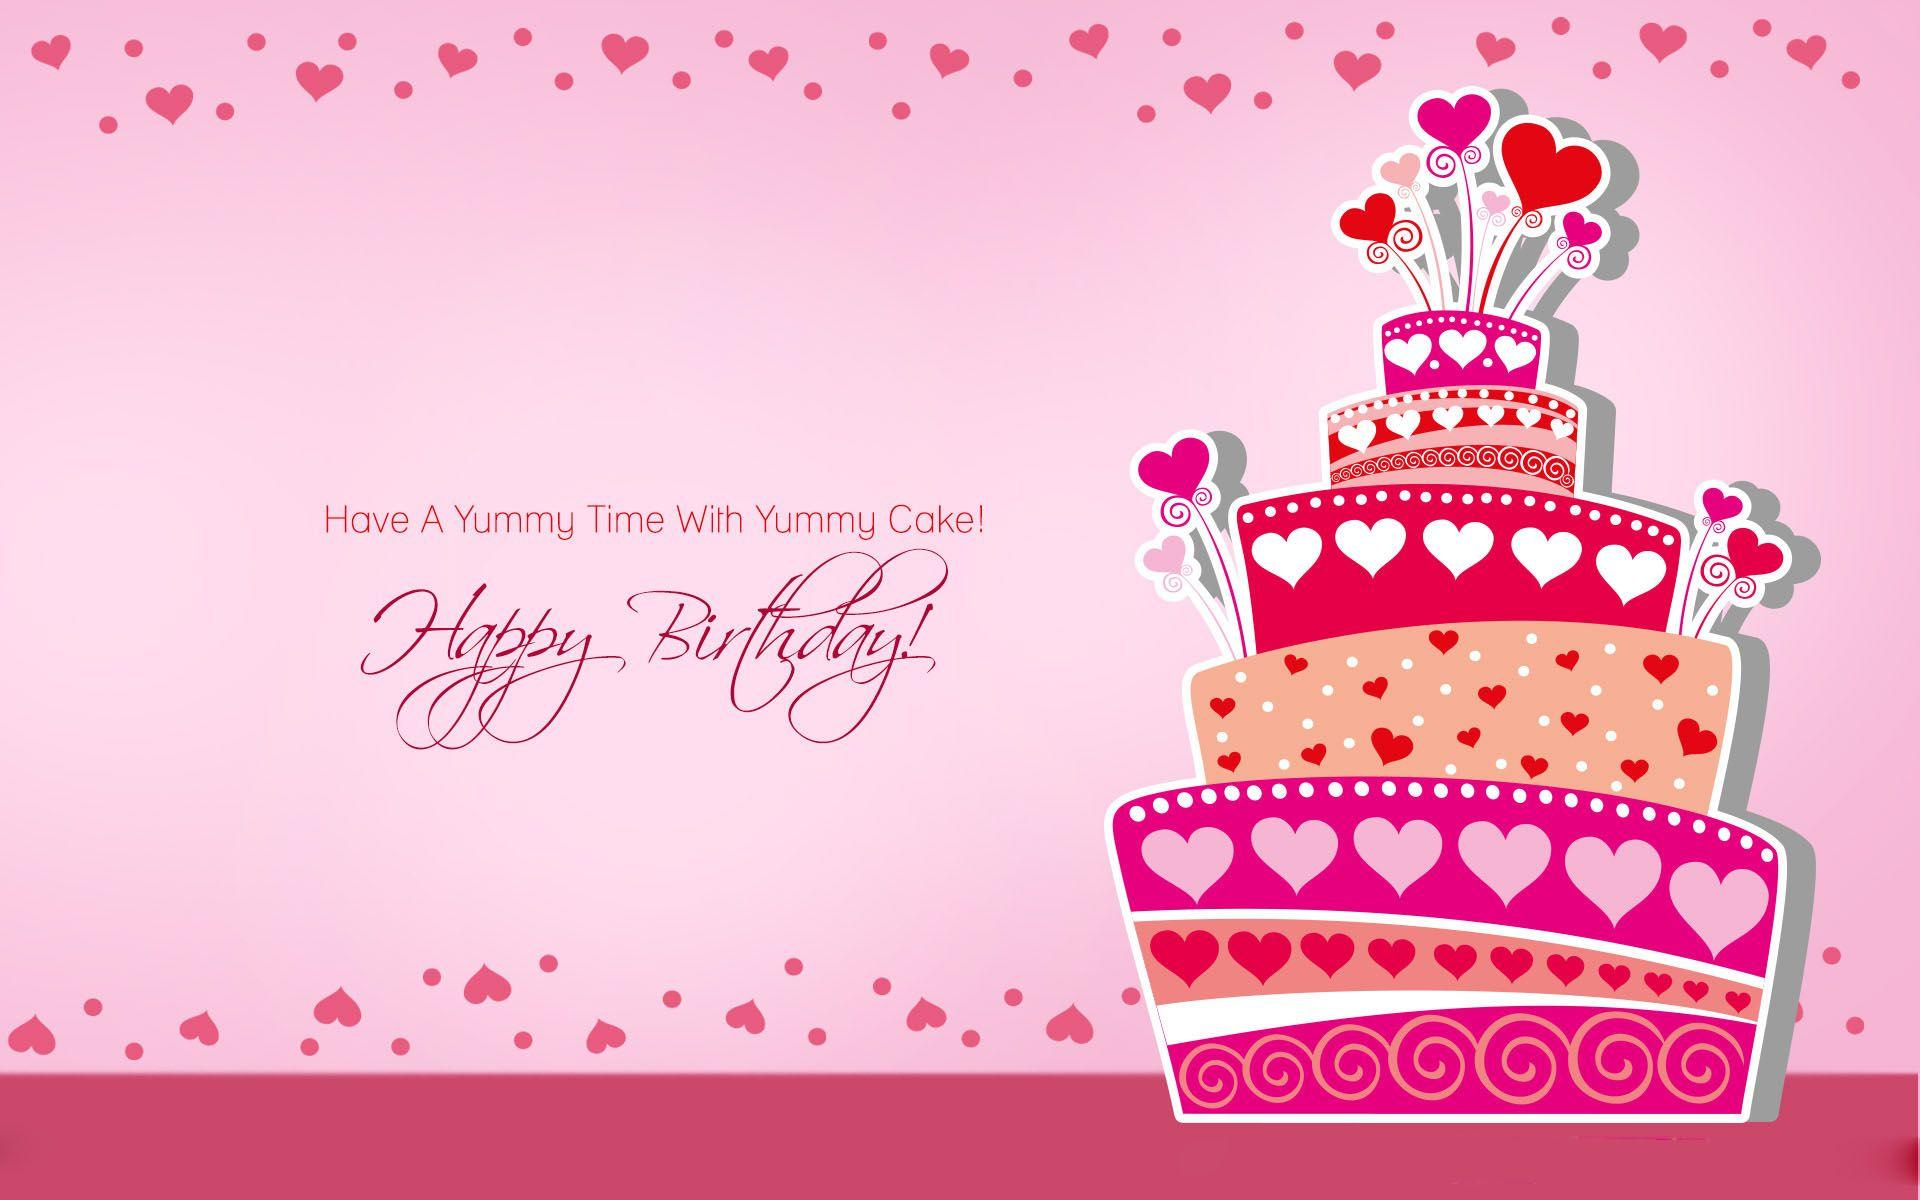 Happy Birthday Wallpapers Images, HD, Free for Facebook | Hey ...